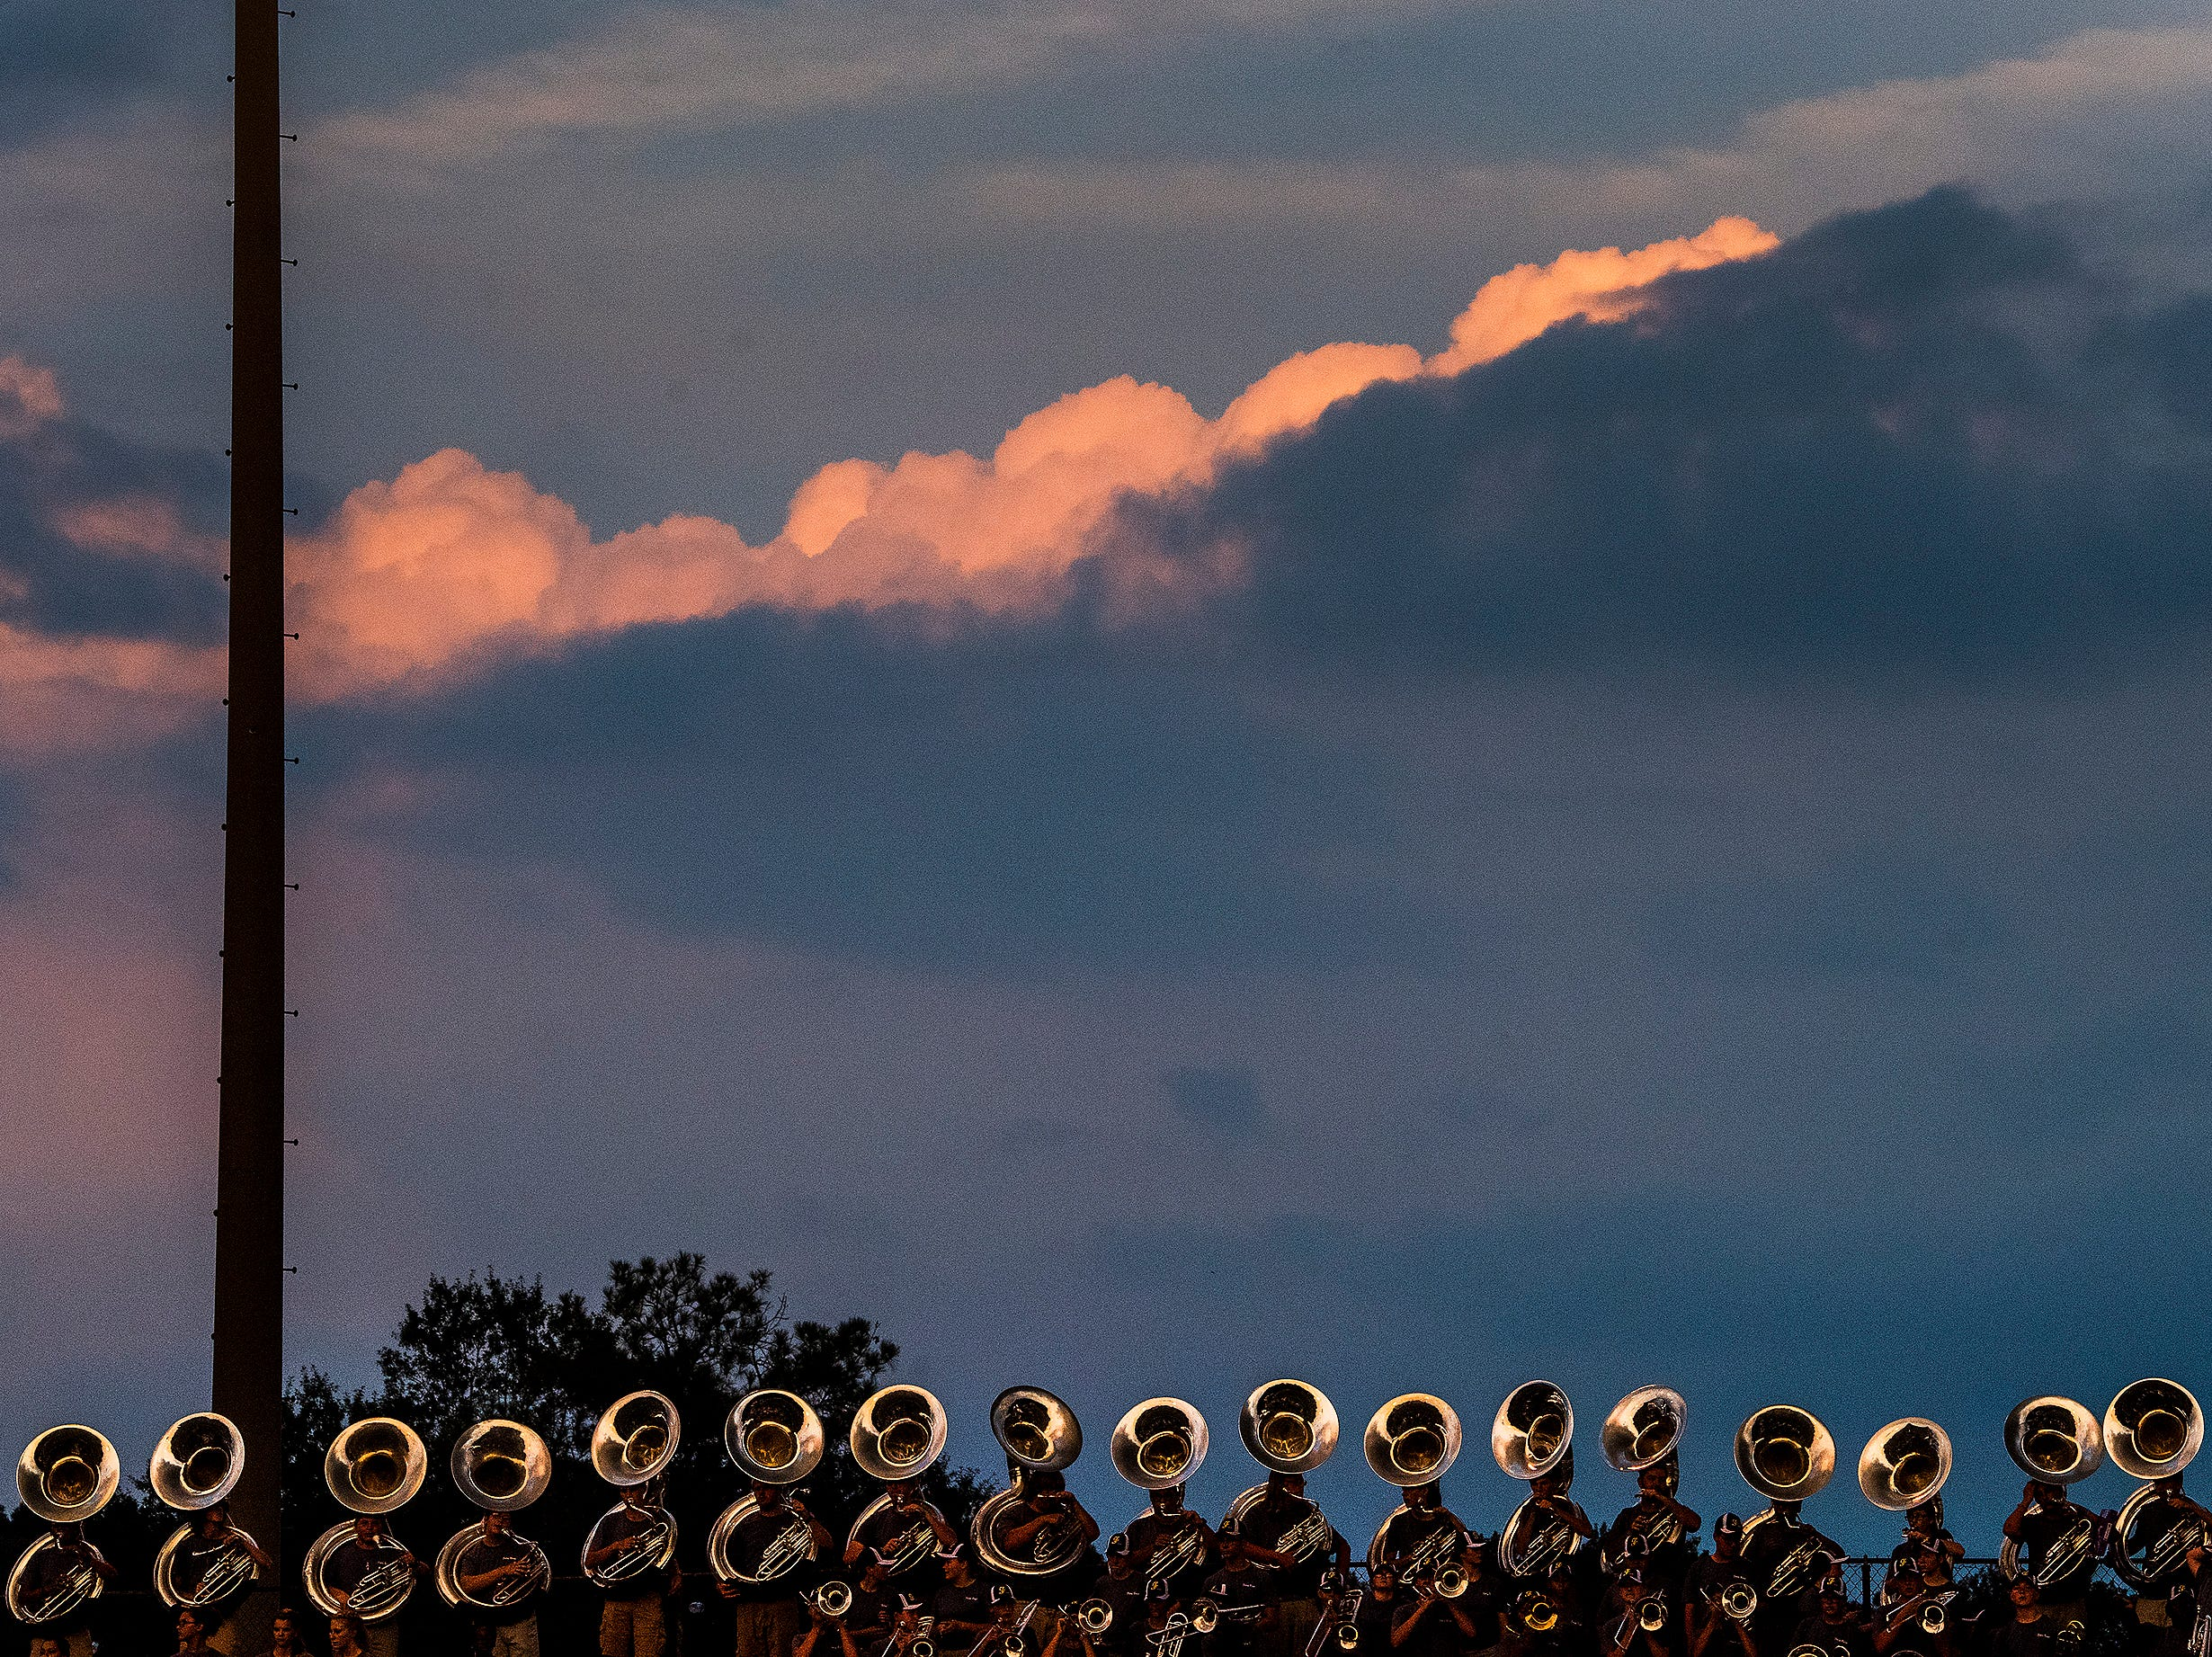 The sun sets over thew Foley band during the Prattville Foley game at Stanley-Jensen Stadium in Prattville, Ala., on Friday August 24, 2018.